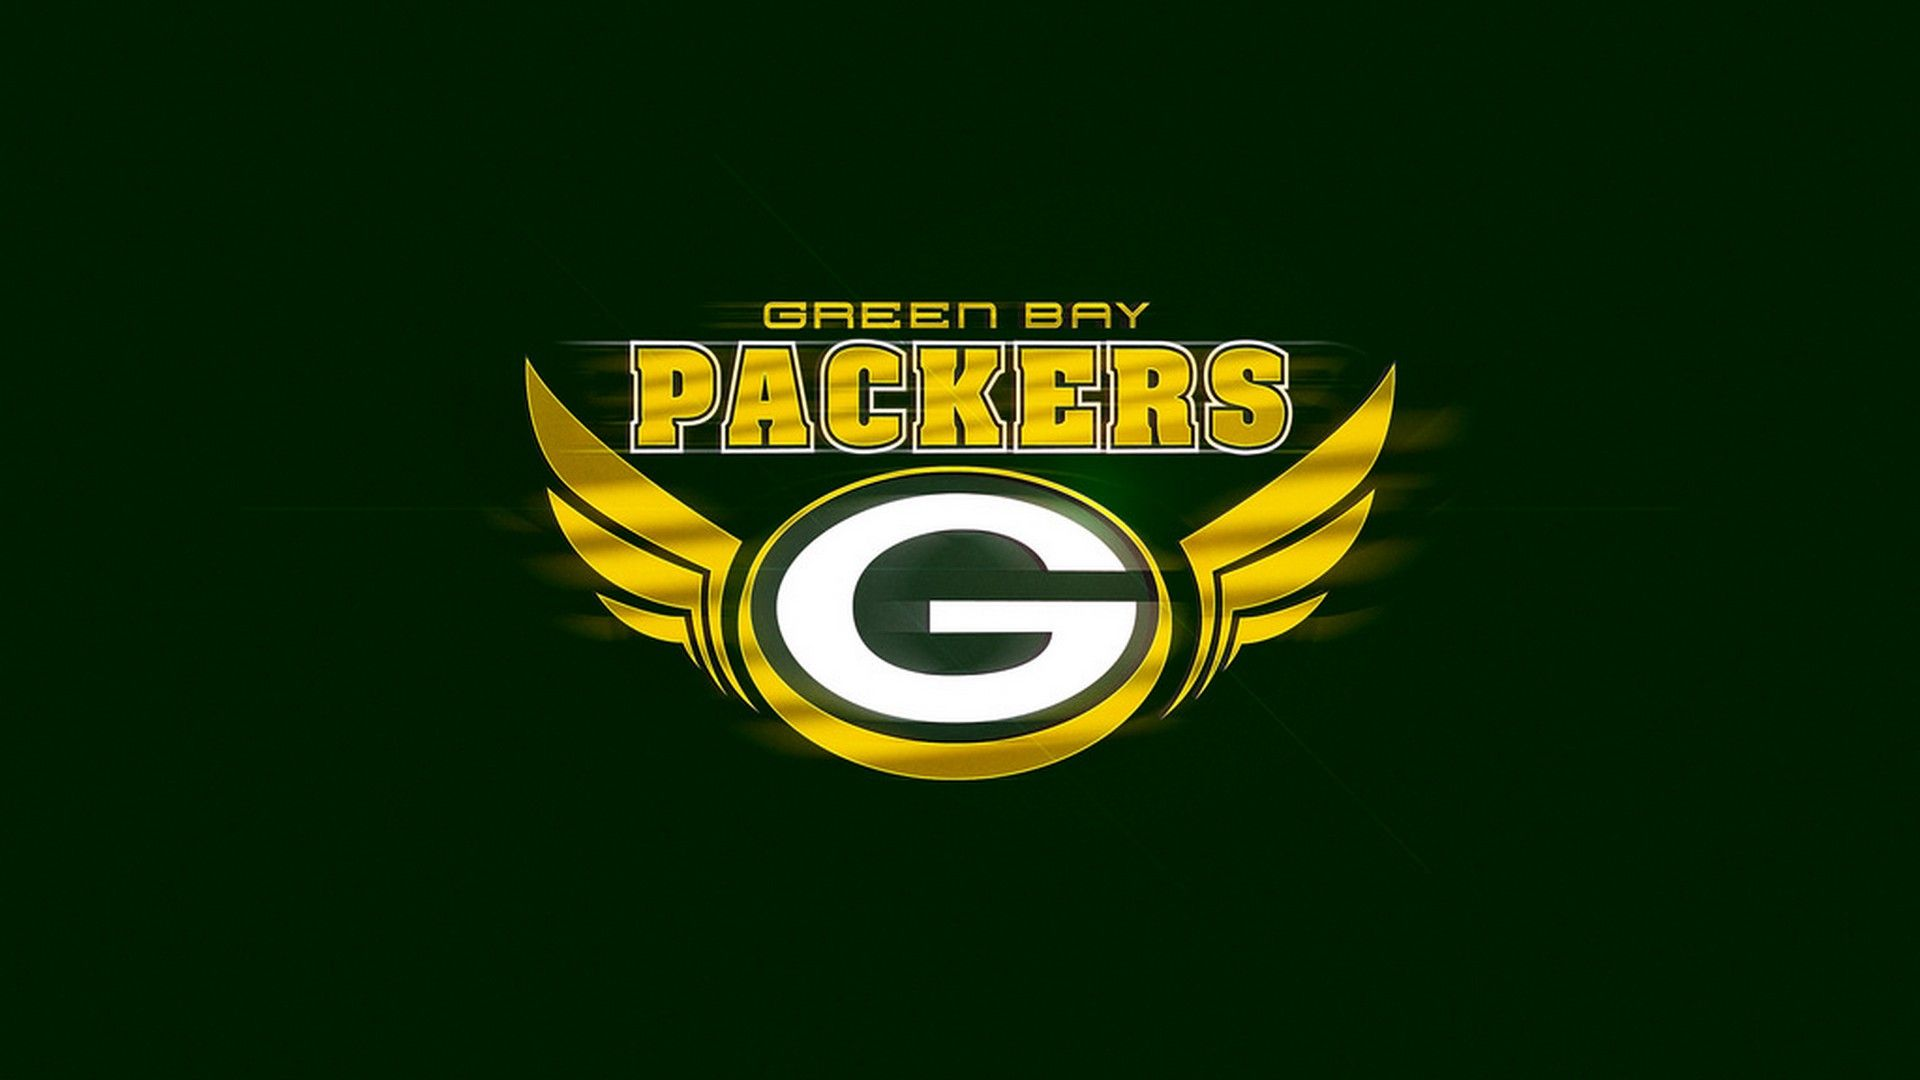 HD Green Bay Packers Backgrounds Green bay packers